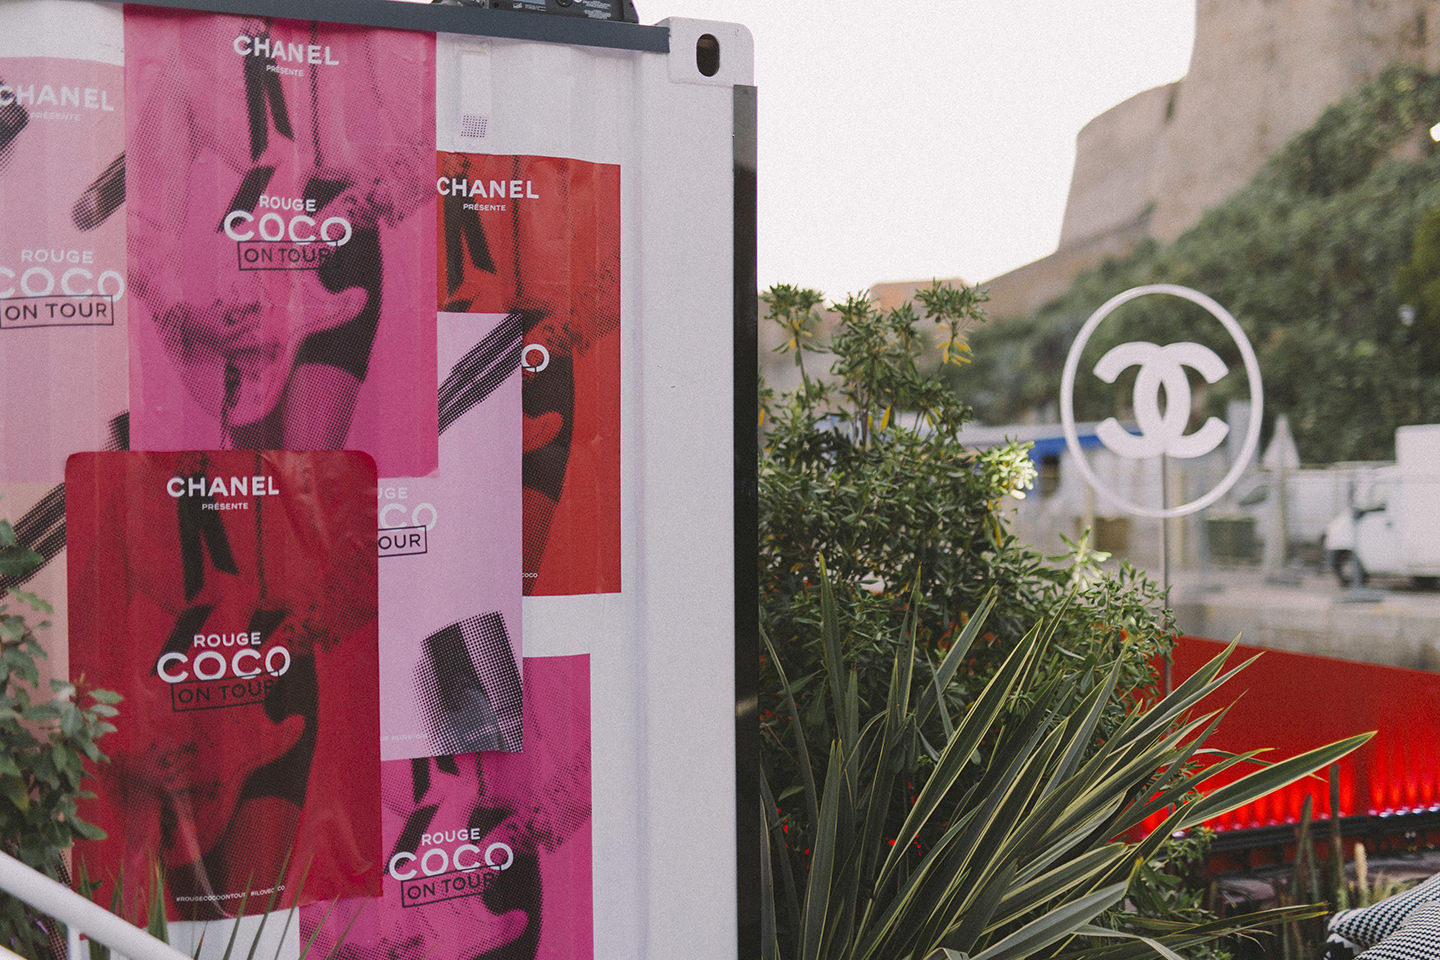 Blog-Mode-And-The-City-Lifestyle-Calvi-on-The-Rocks-avec-Chanel-15